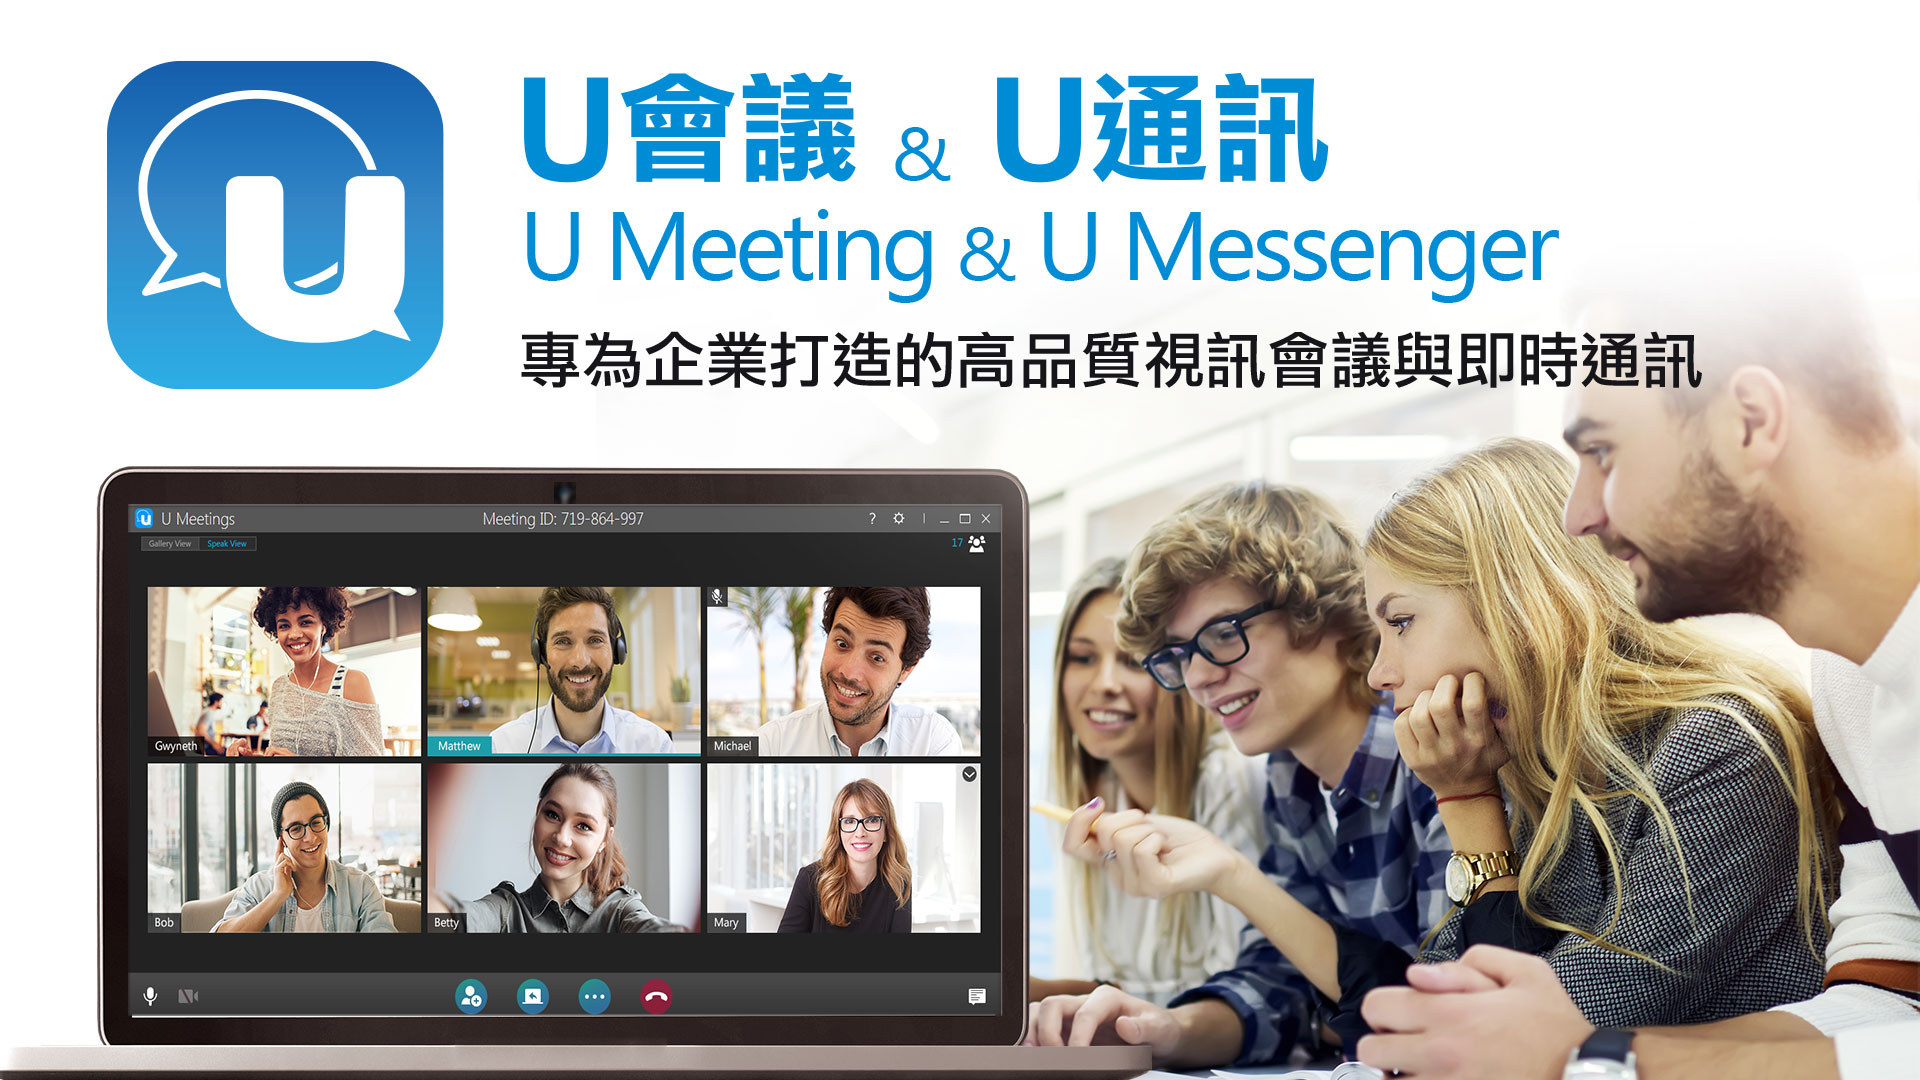 U Meeting & U Messenger / 訊連科技股份有限公司(CyberLink)